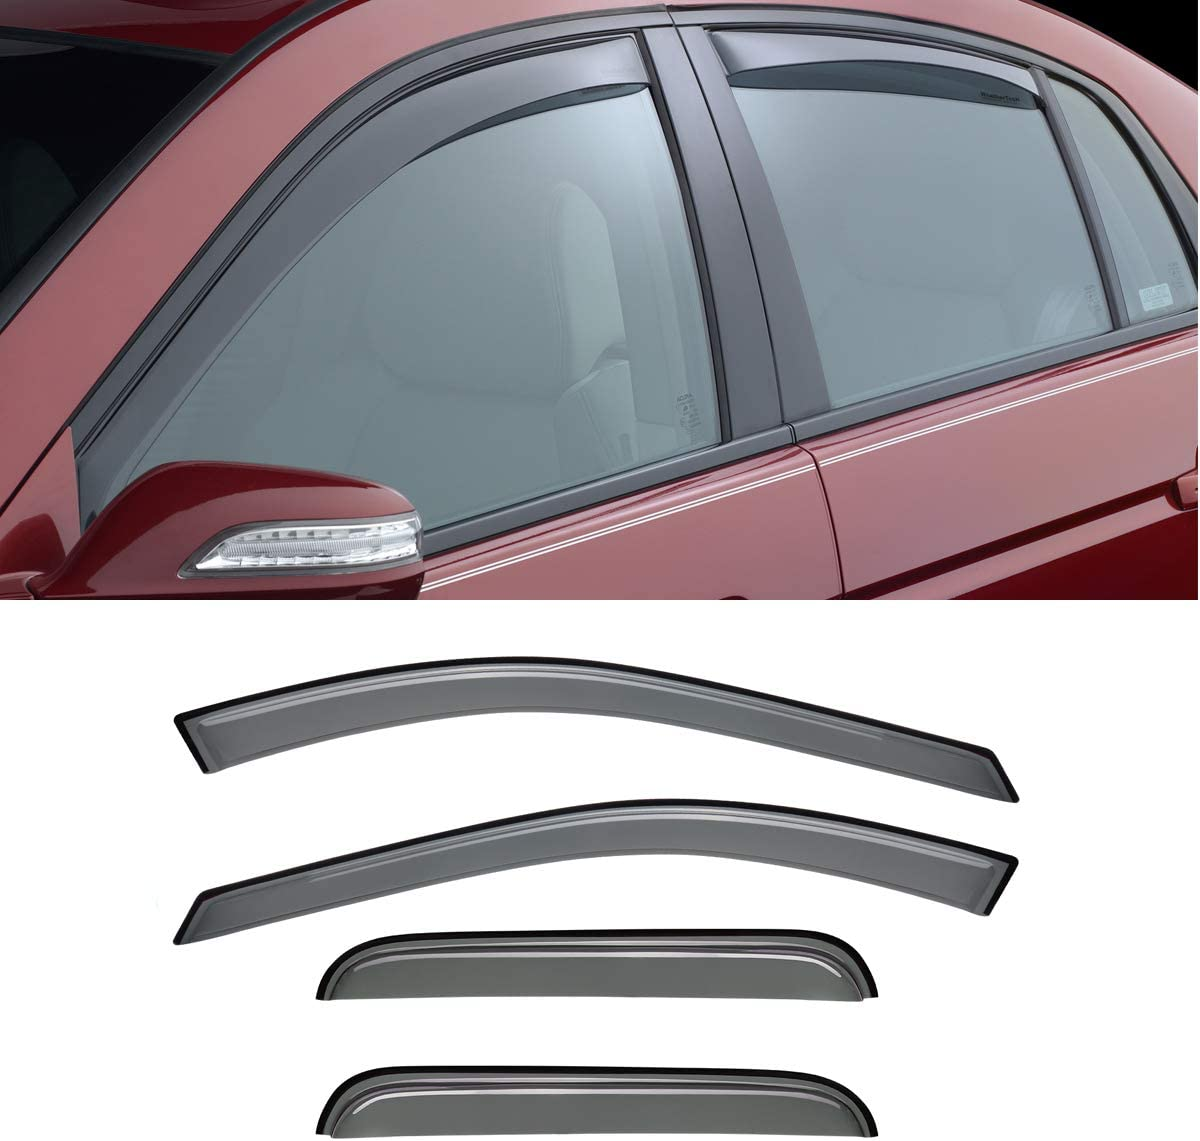 Gevog 4pcs Original Side Window Deflector Tape-On Style Window Visors for 04-08 Acura TL Sun//Rain Guard Ventvisor Not Fit Early 2004 Model